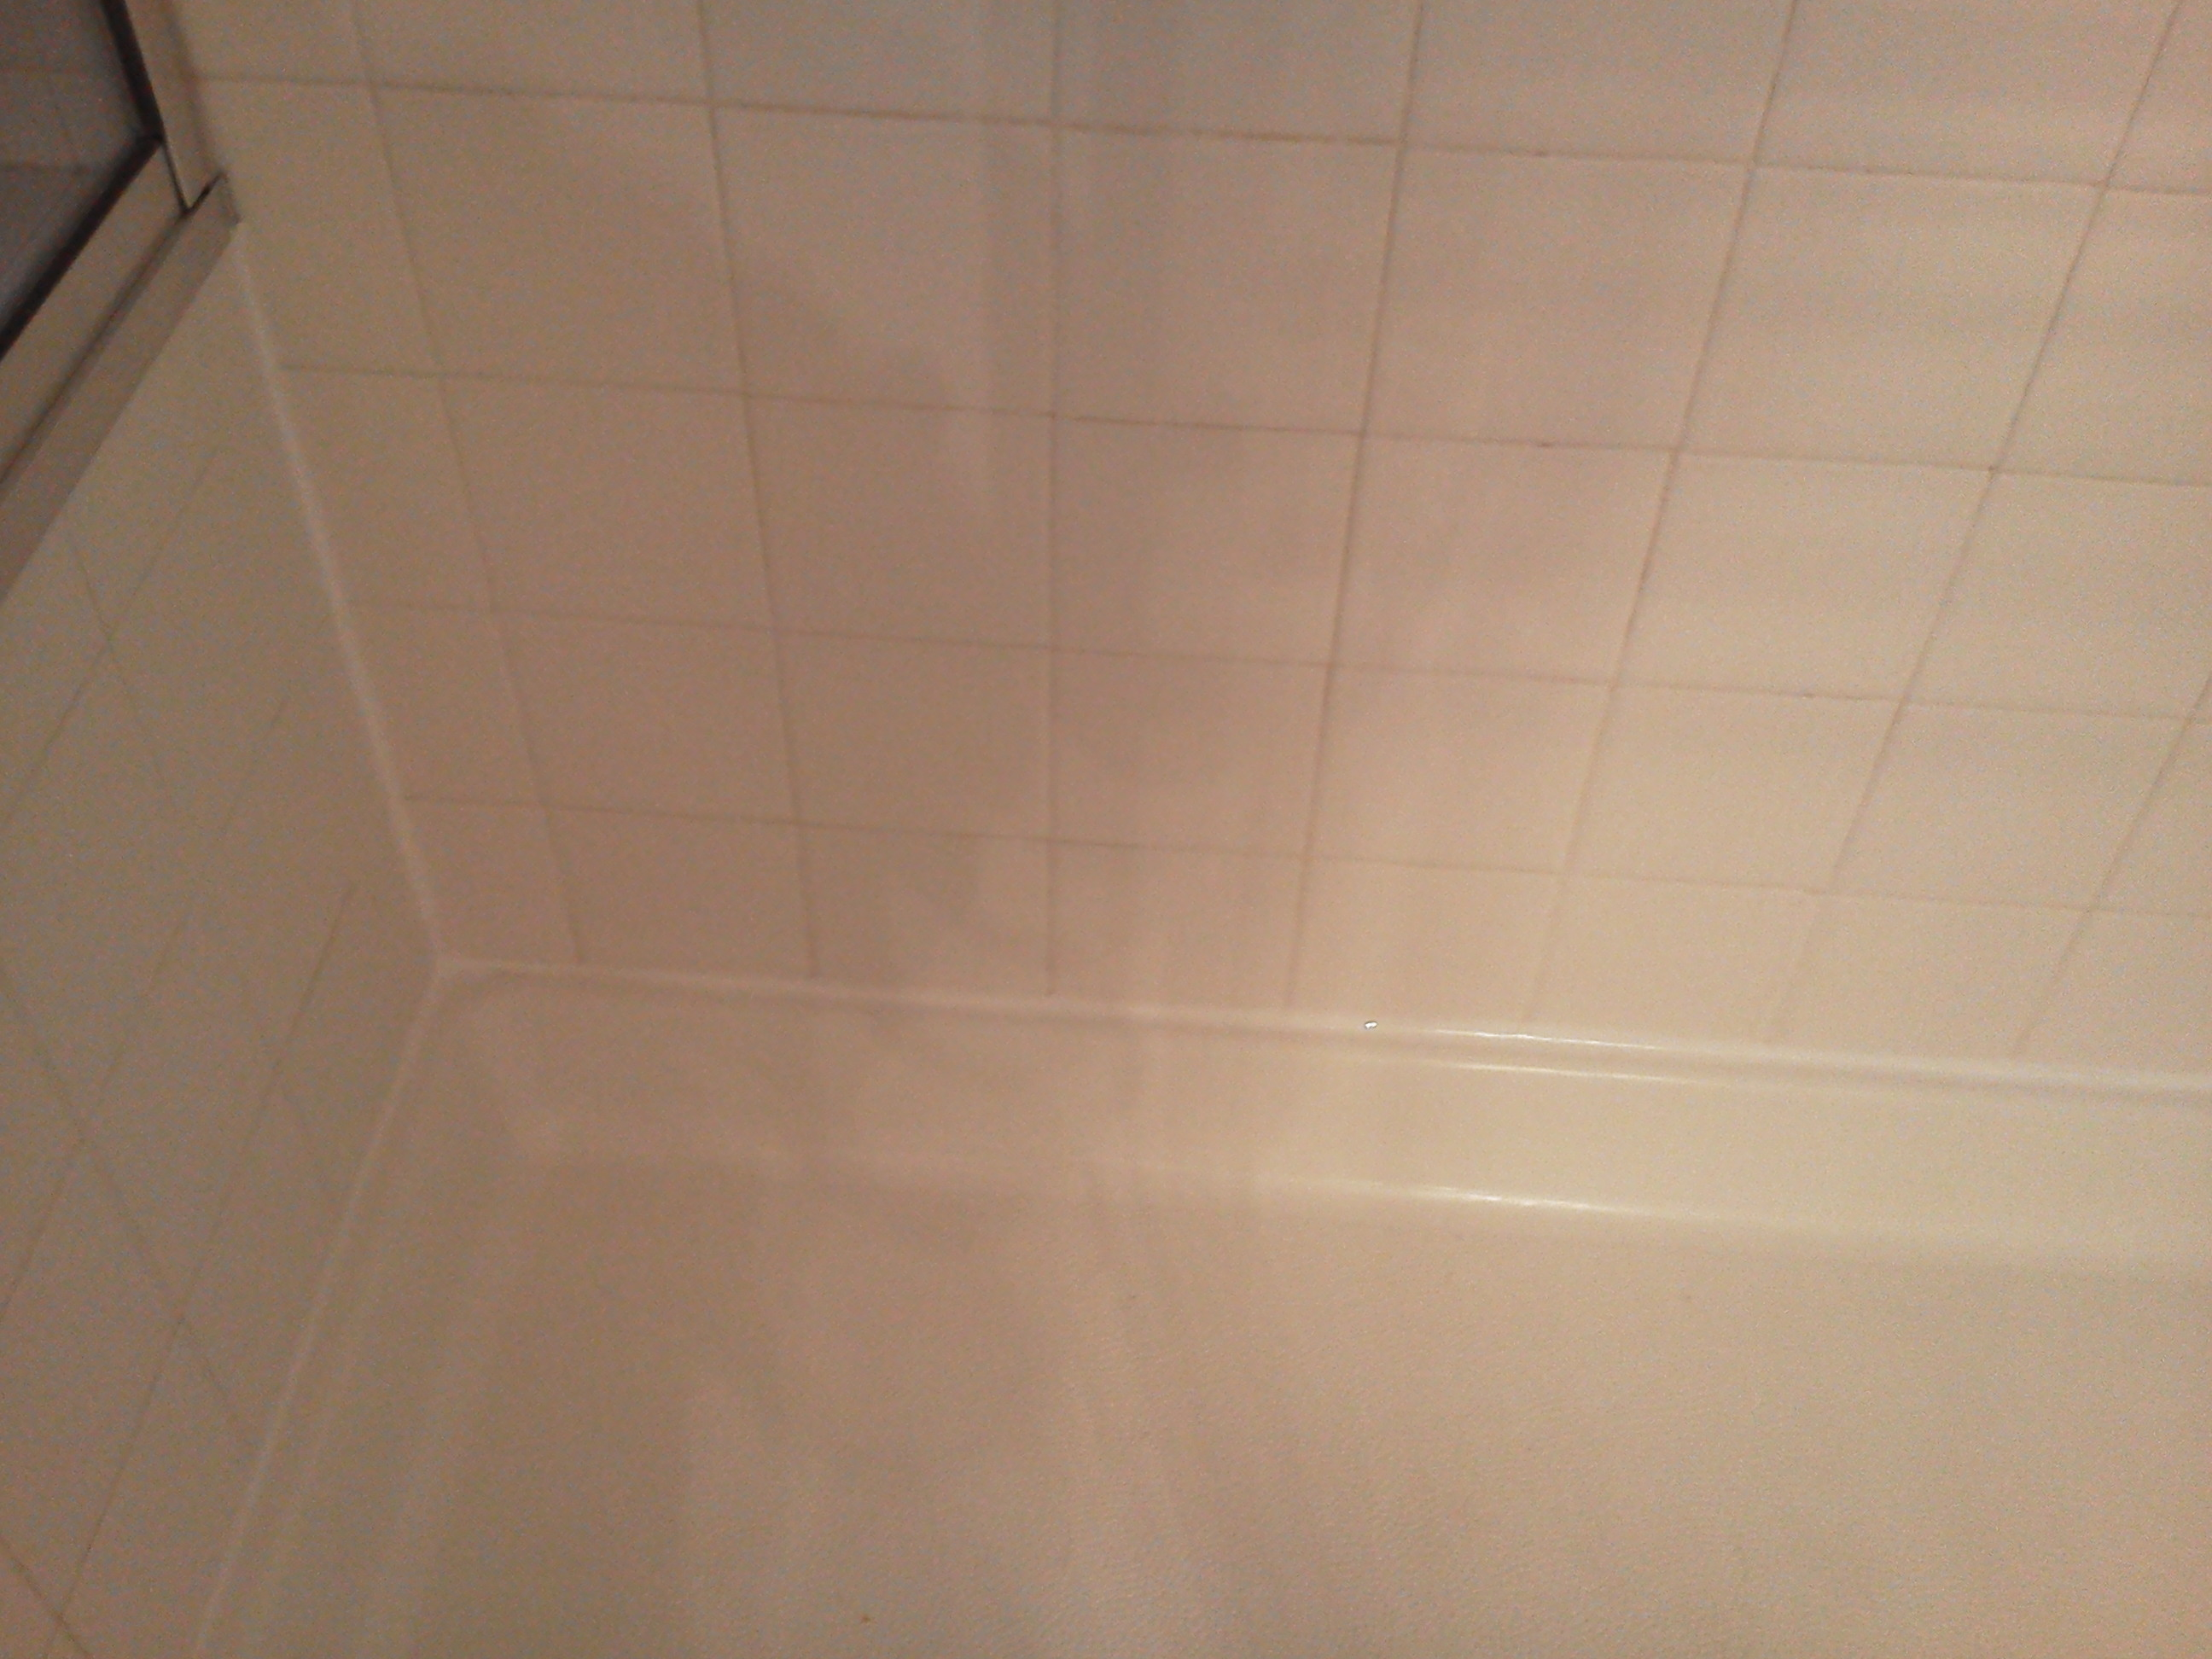 A Minor Shower Repair Could Save Thousands Pristine Tile Carpet Cleaning